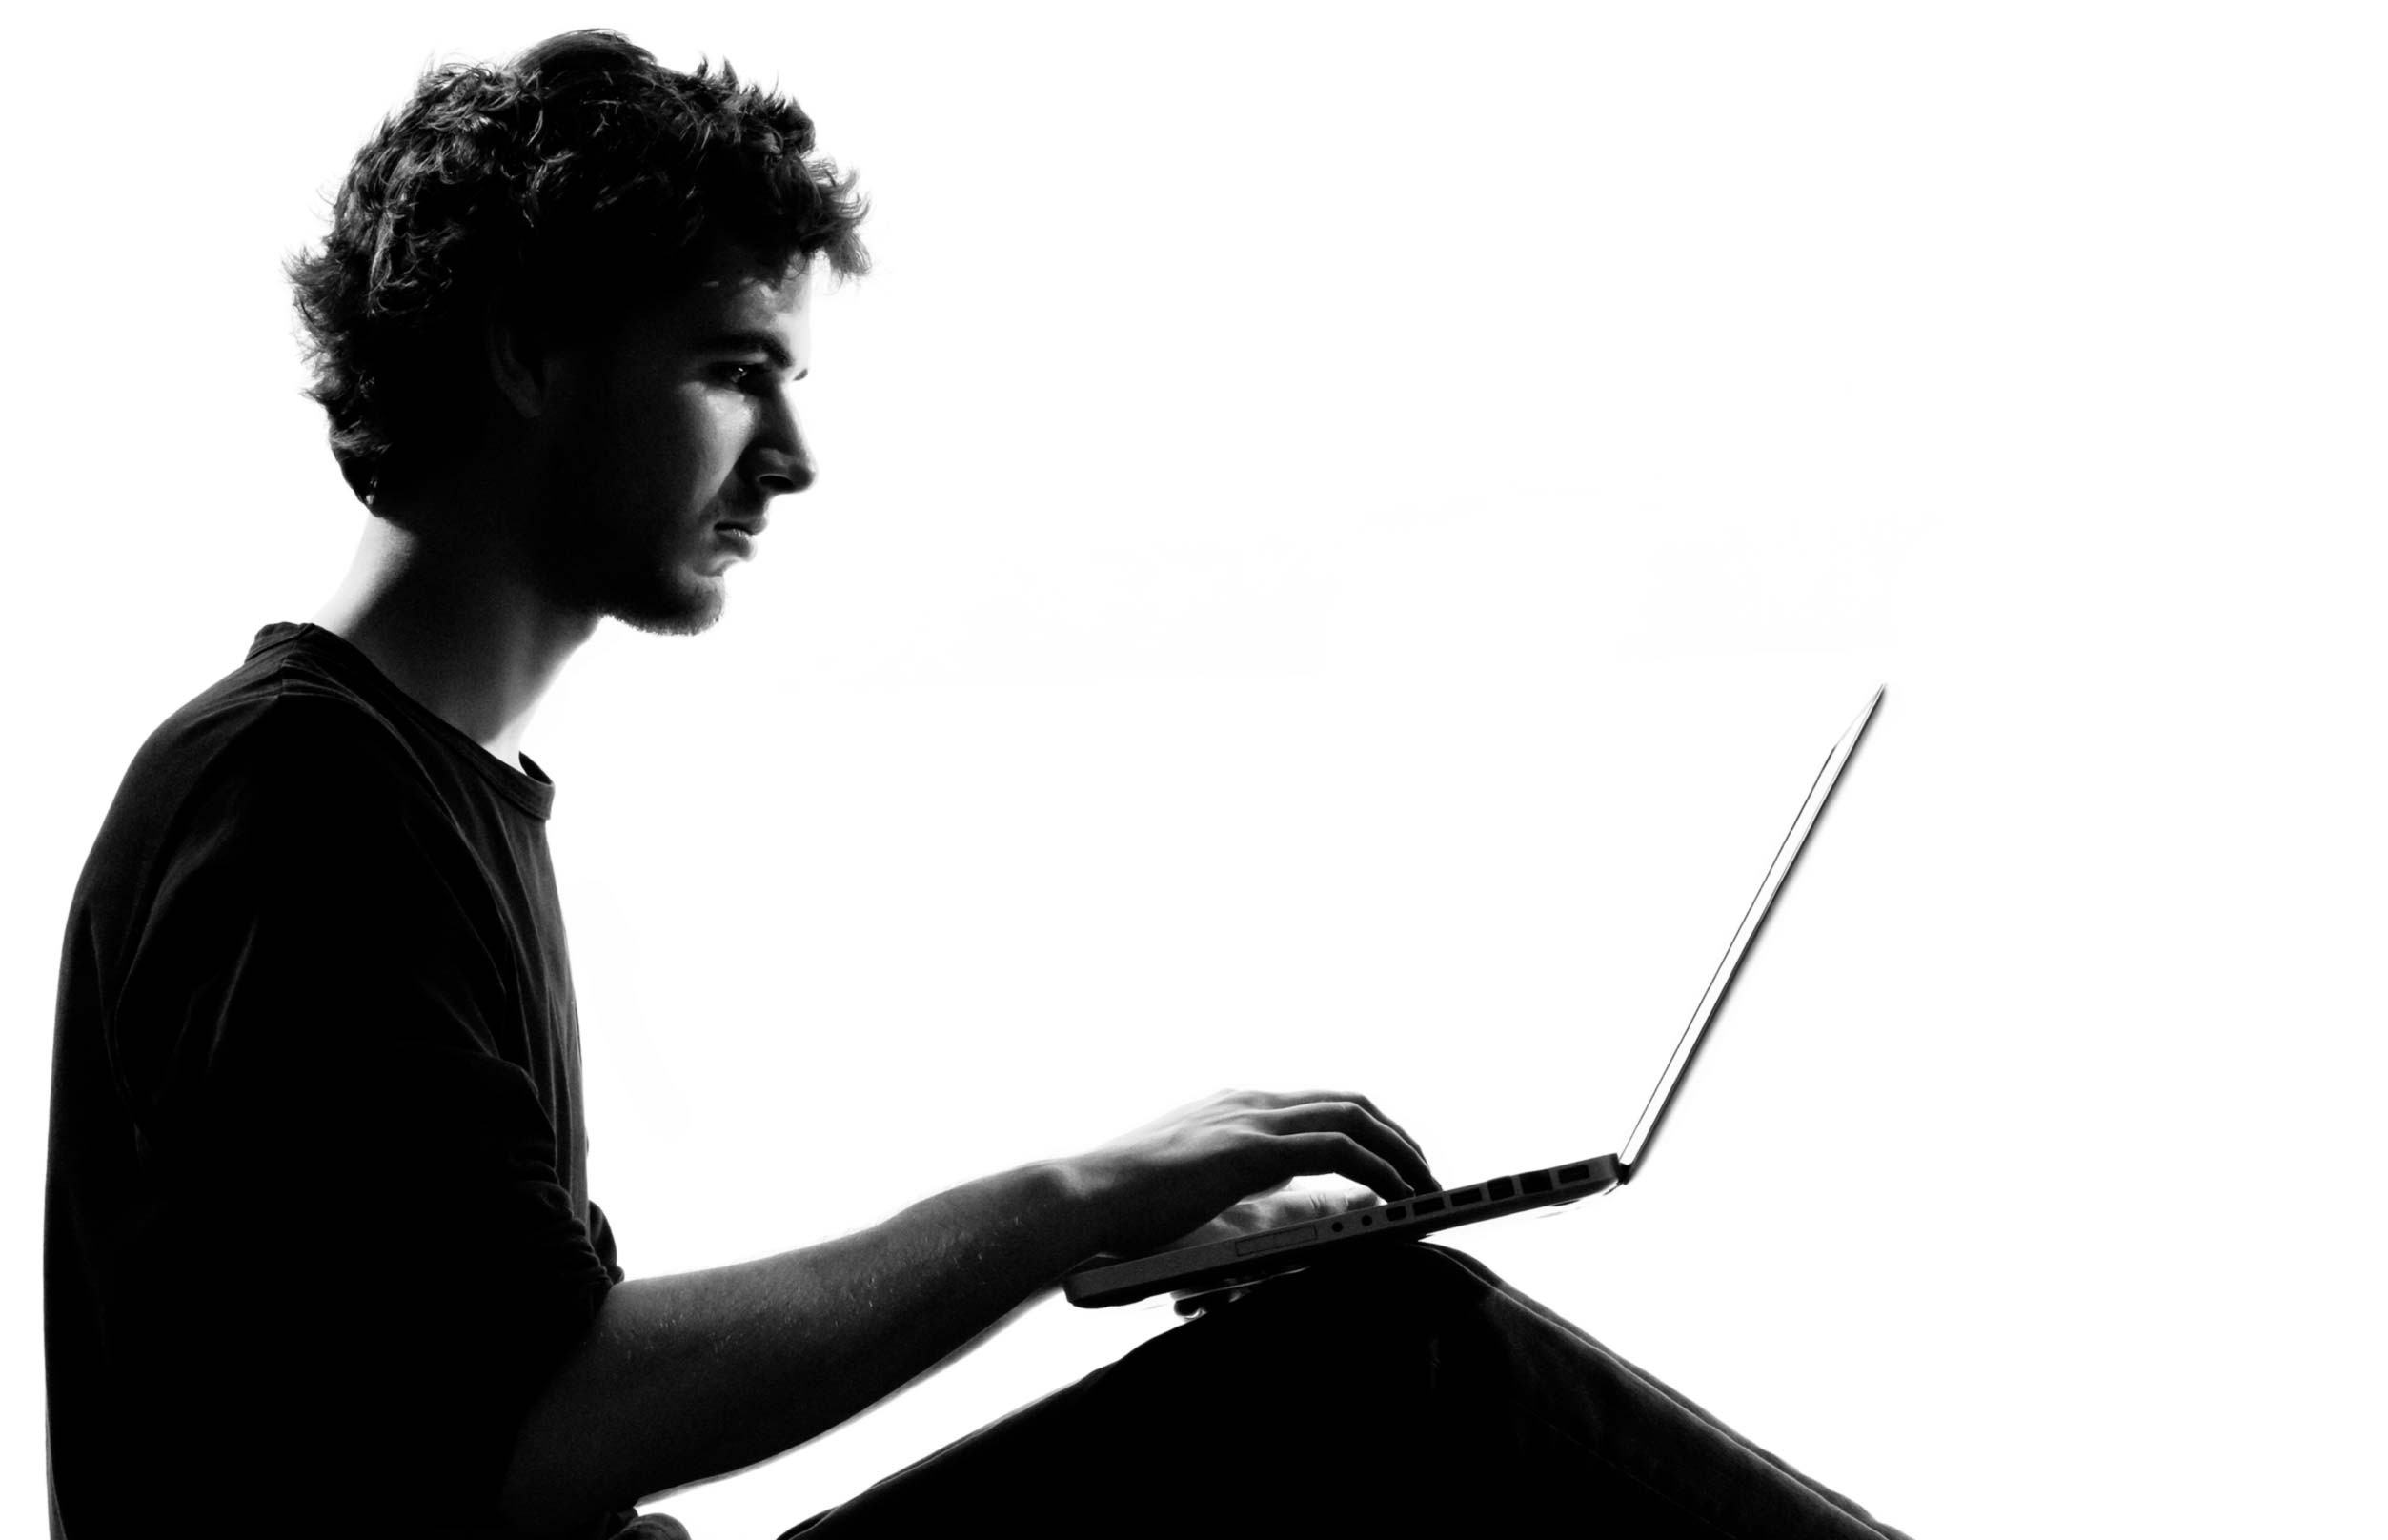 physiotherapy solutions - image of a man on Laptop